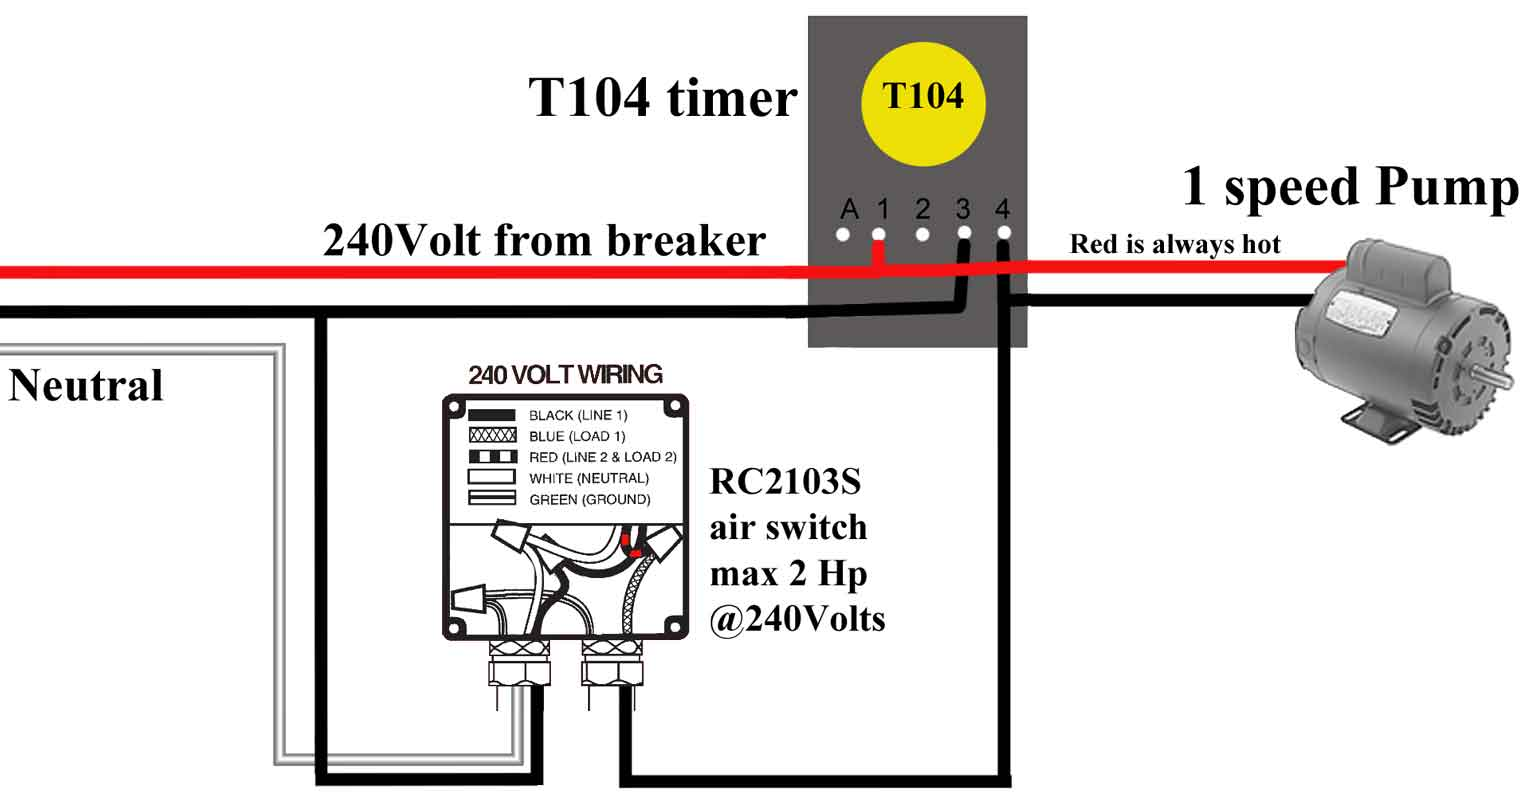 Wire air switch to T104